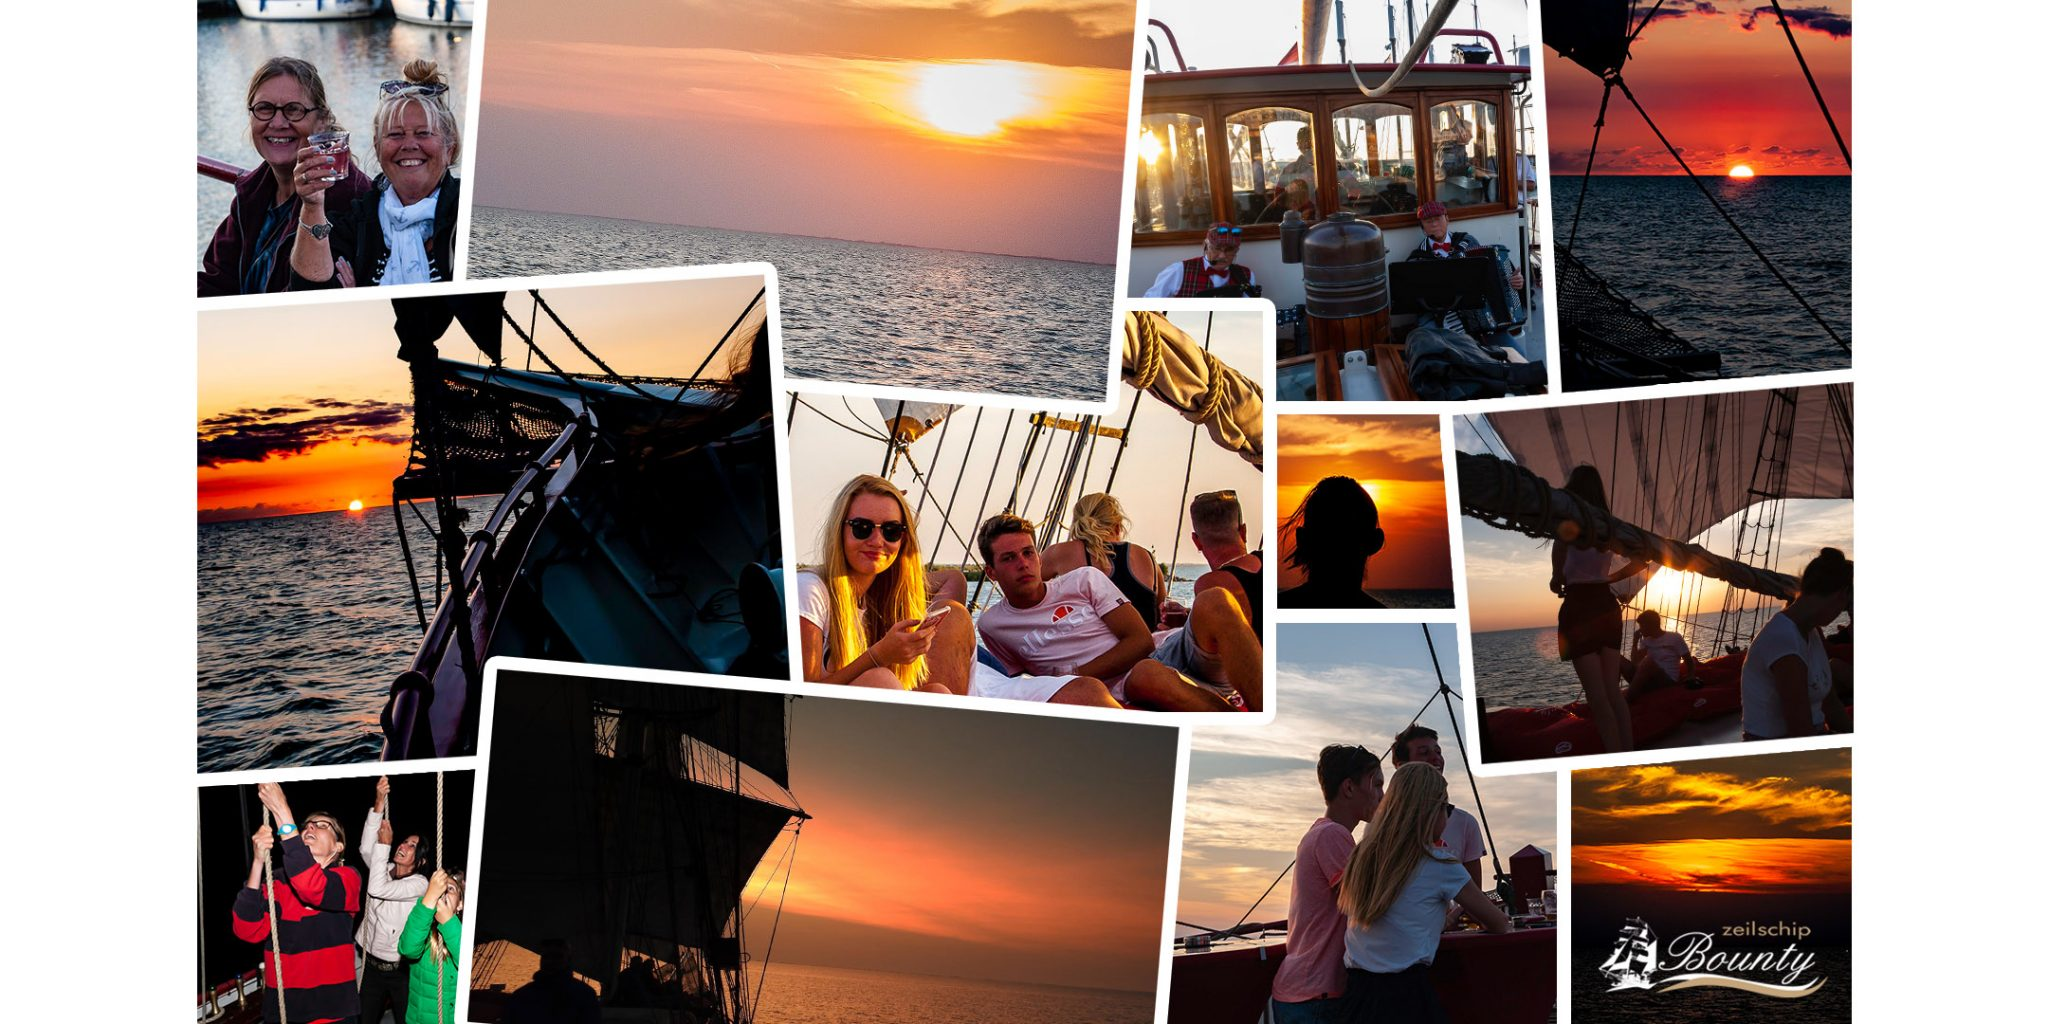 zeilschipbounty collage sunset cruise